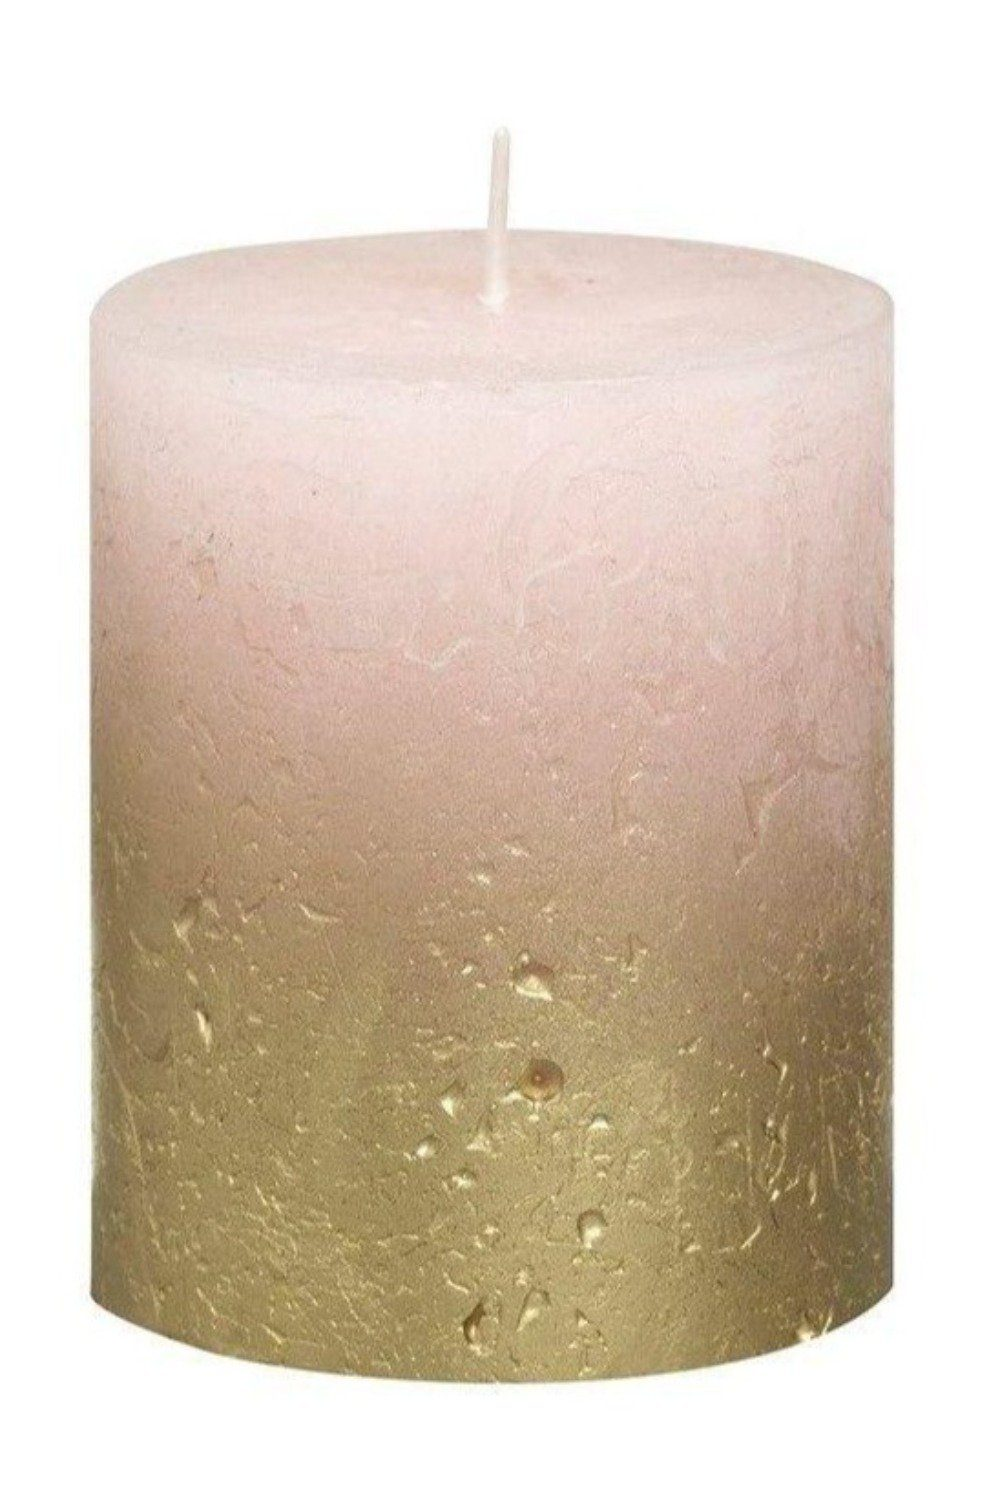 Rustic Pillar Candles - Light Pink and Gold Candles & Fragrance Blume Small